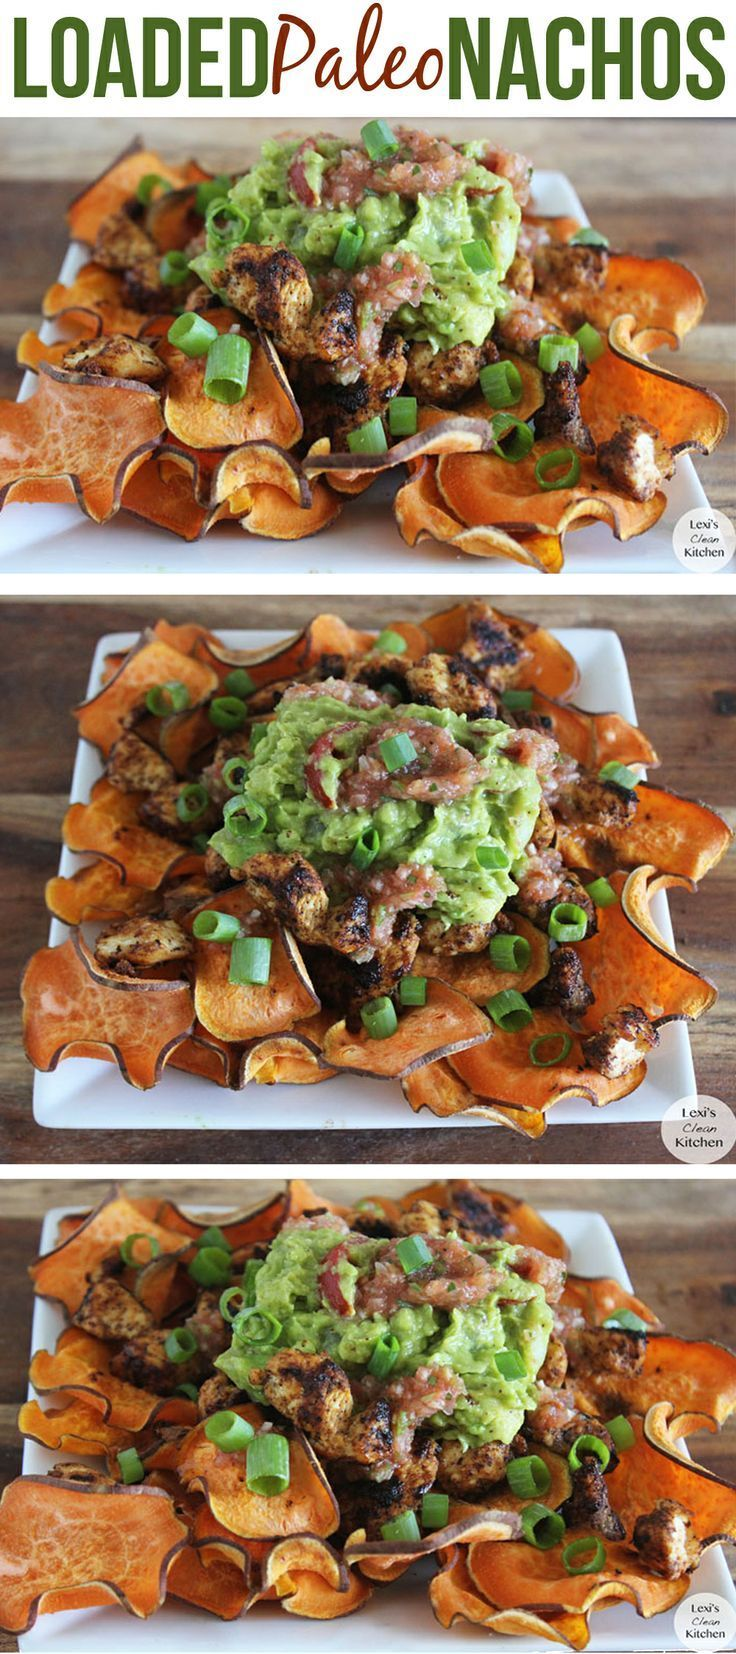 Loaded Paleo Nachos .Sweet potatoe chips, bettter than corn. | Chef recipes magazine